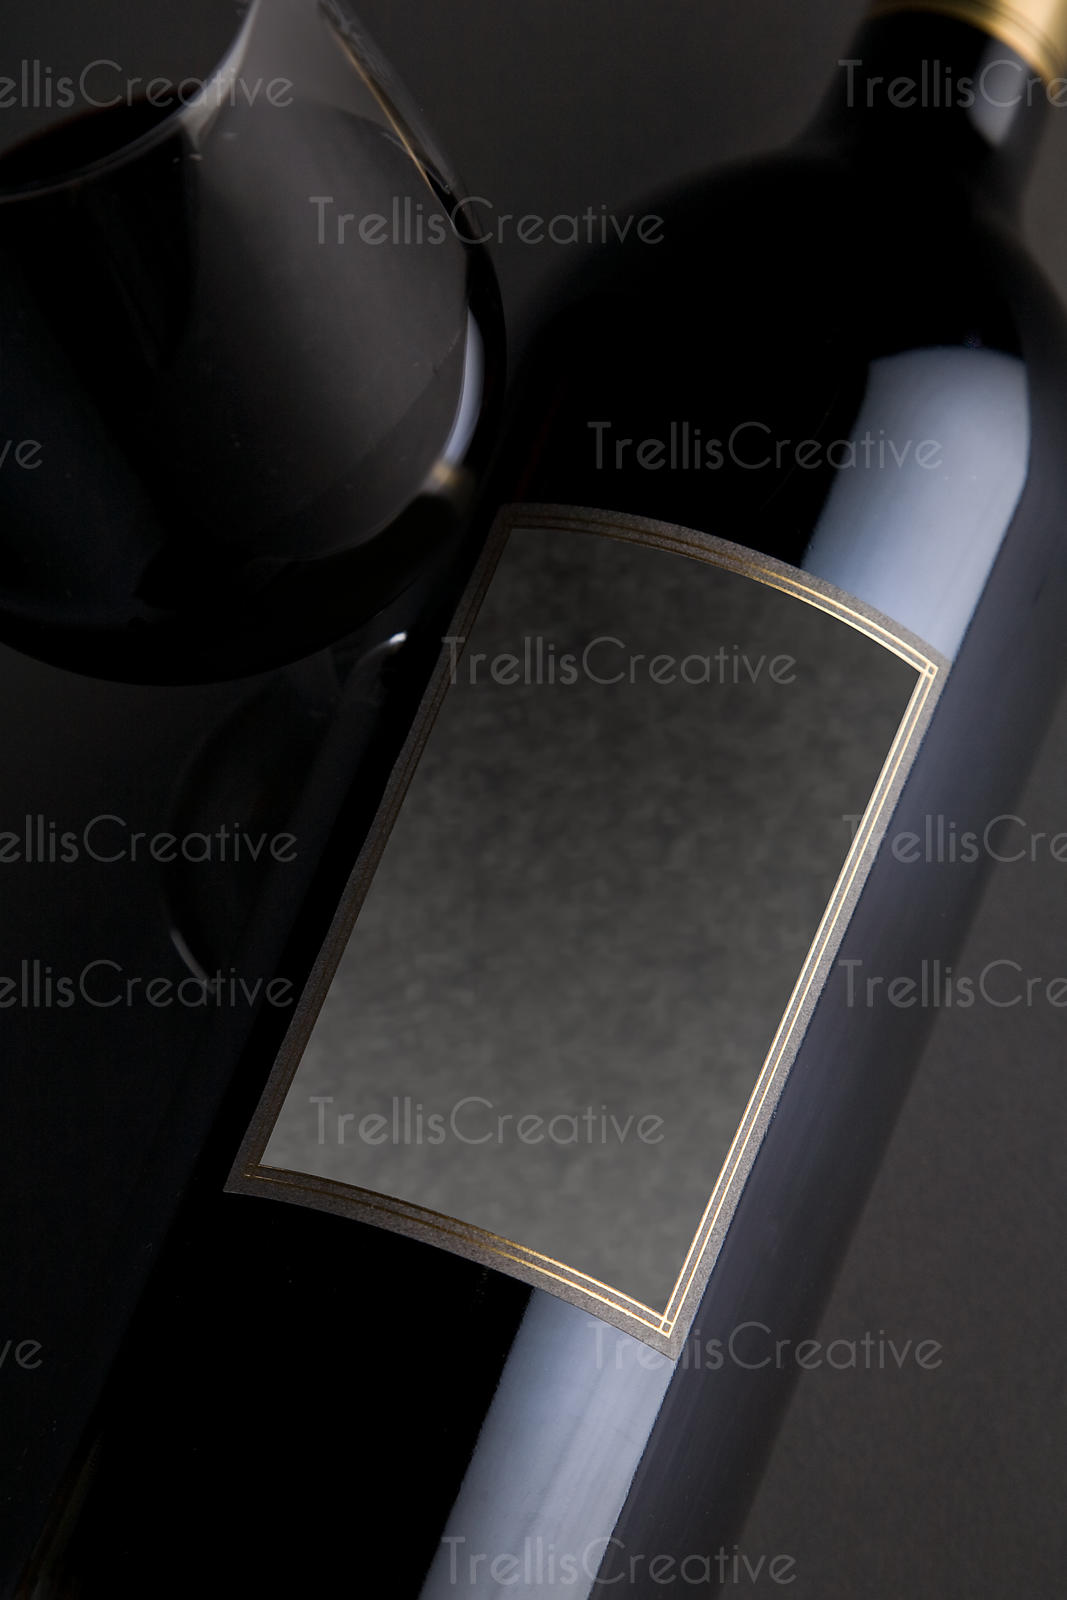 Red Bordeaux style wine magnum bottle with blank gray label